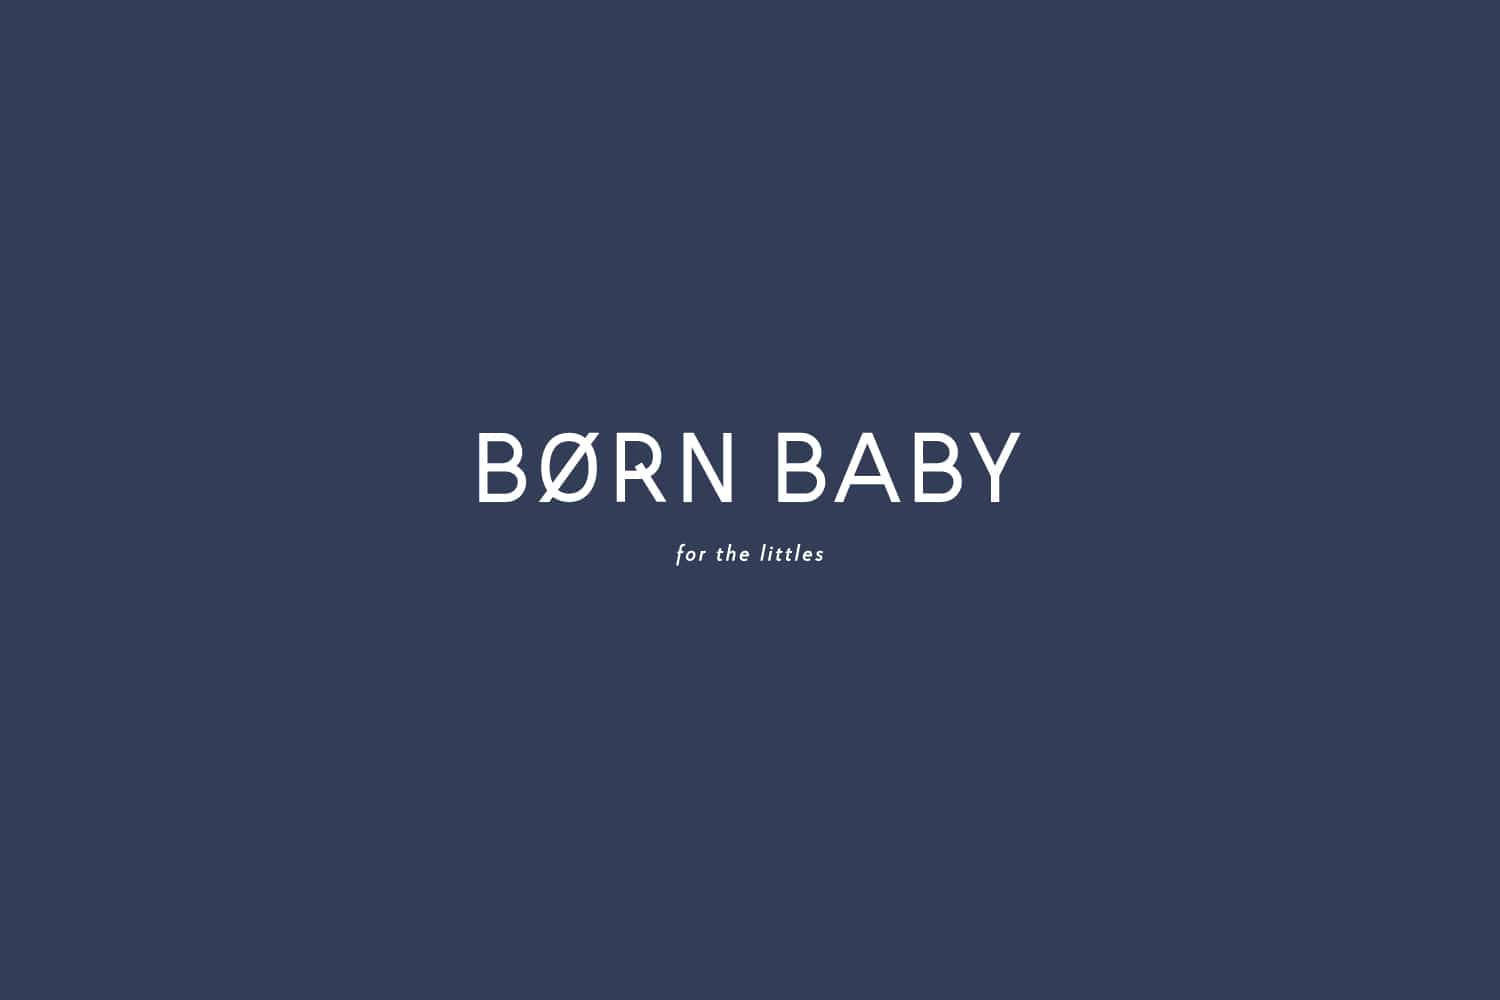 Børn Baby | SDCO Partners